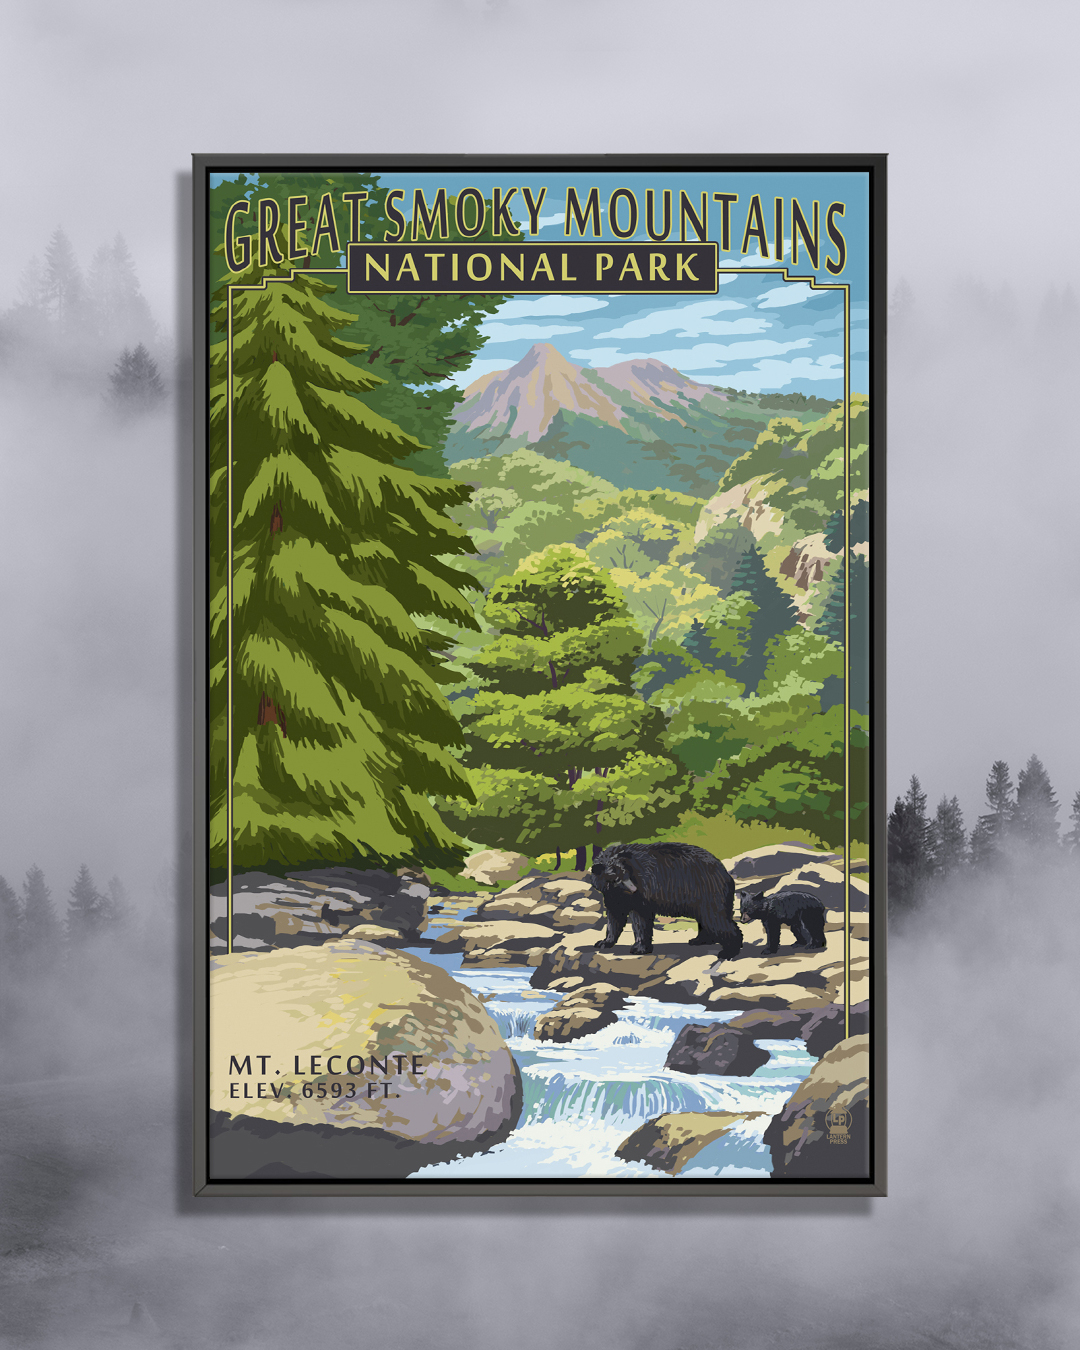 Graphic of adult and baby black bear near a stream with rocks surrounded by forest trees with mountains in the background and text that says Great Smoky Mountains National Park